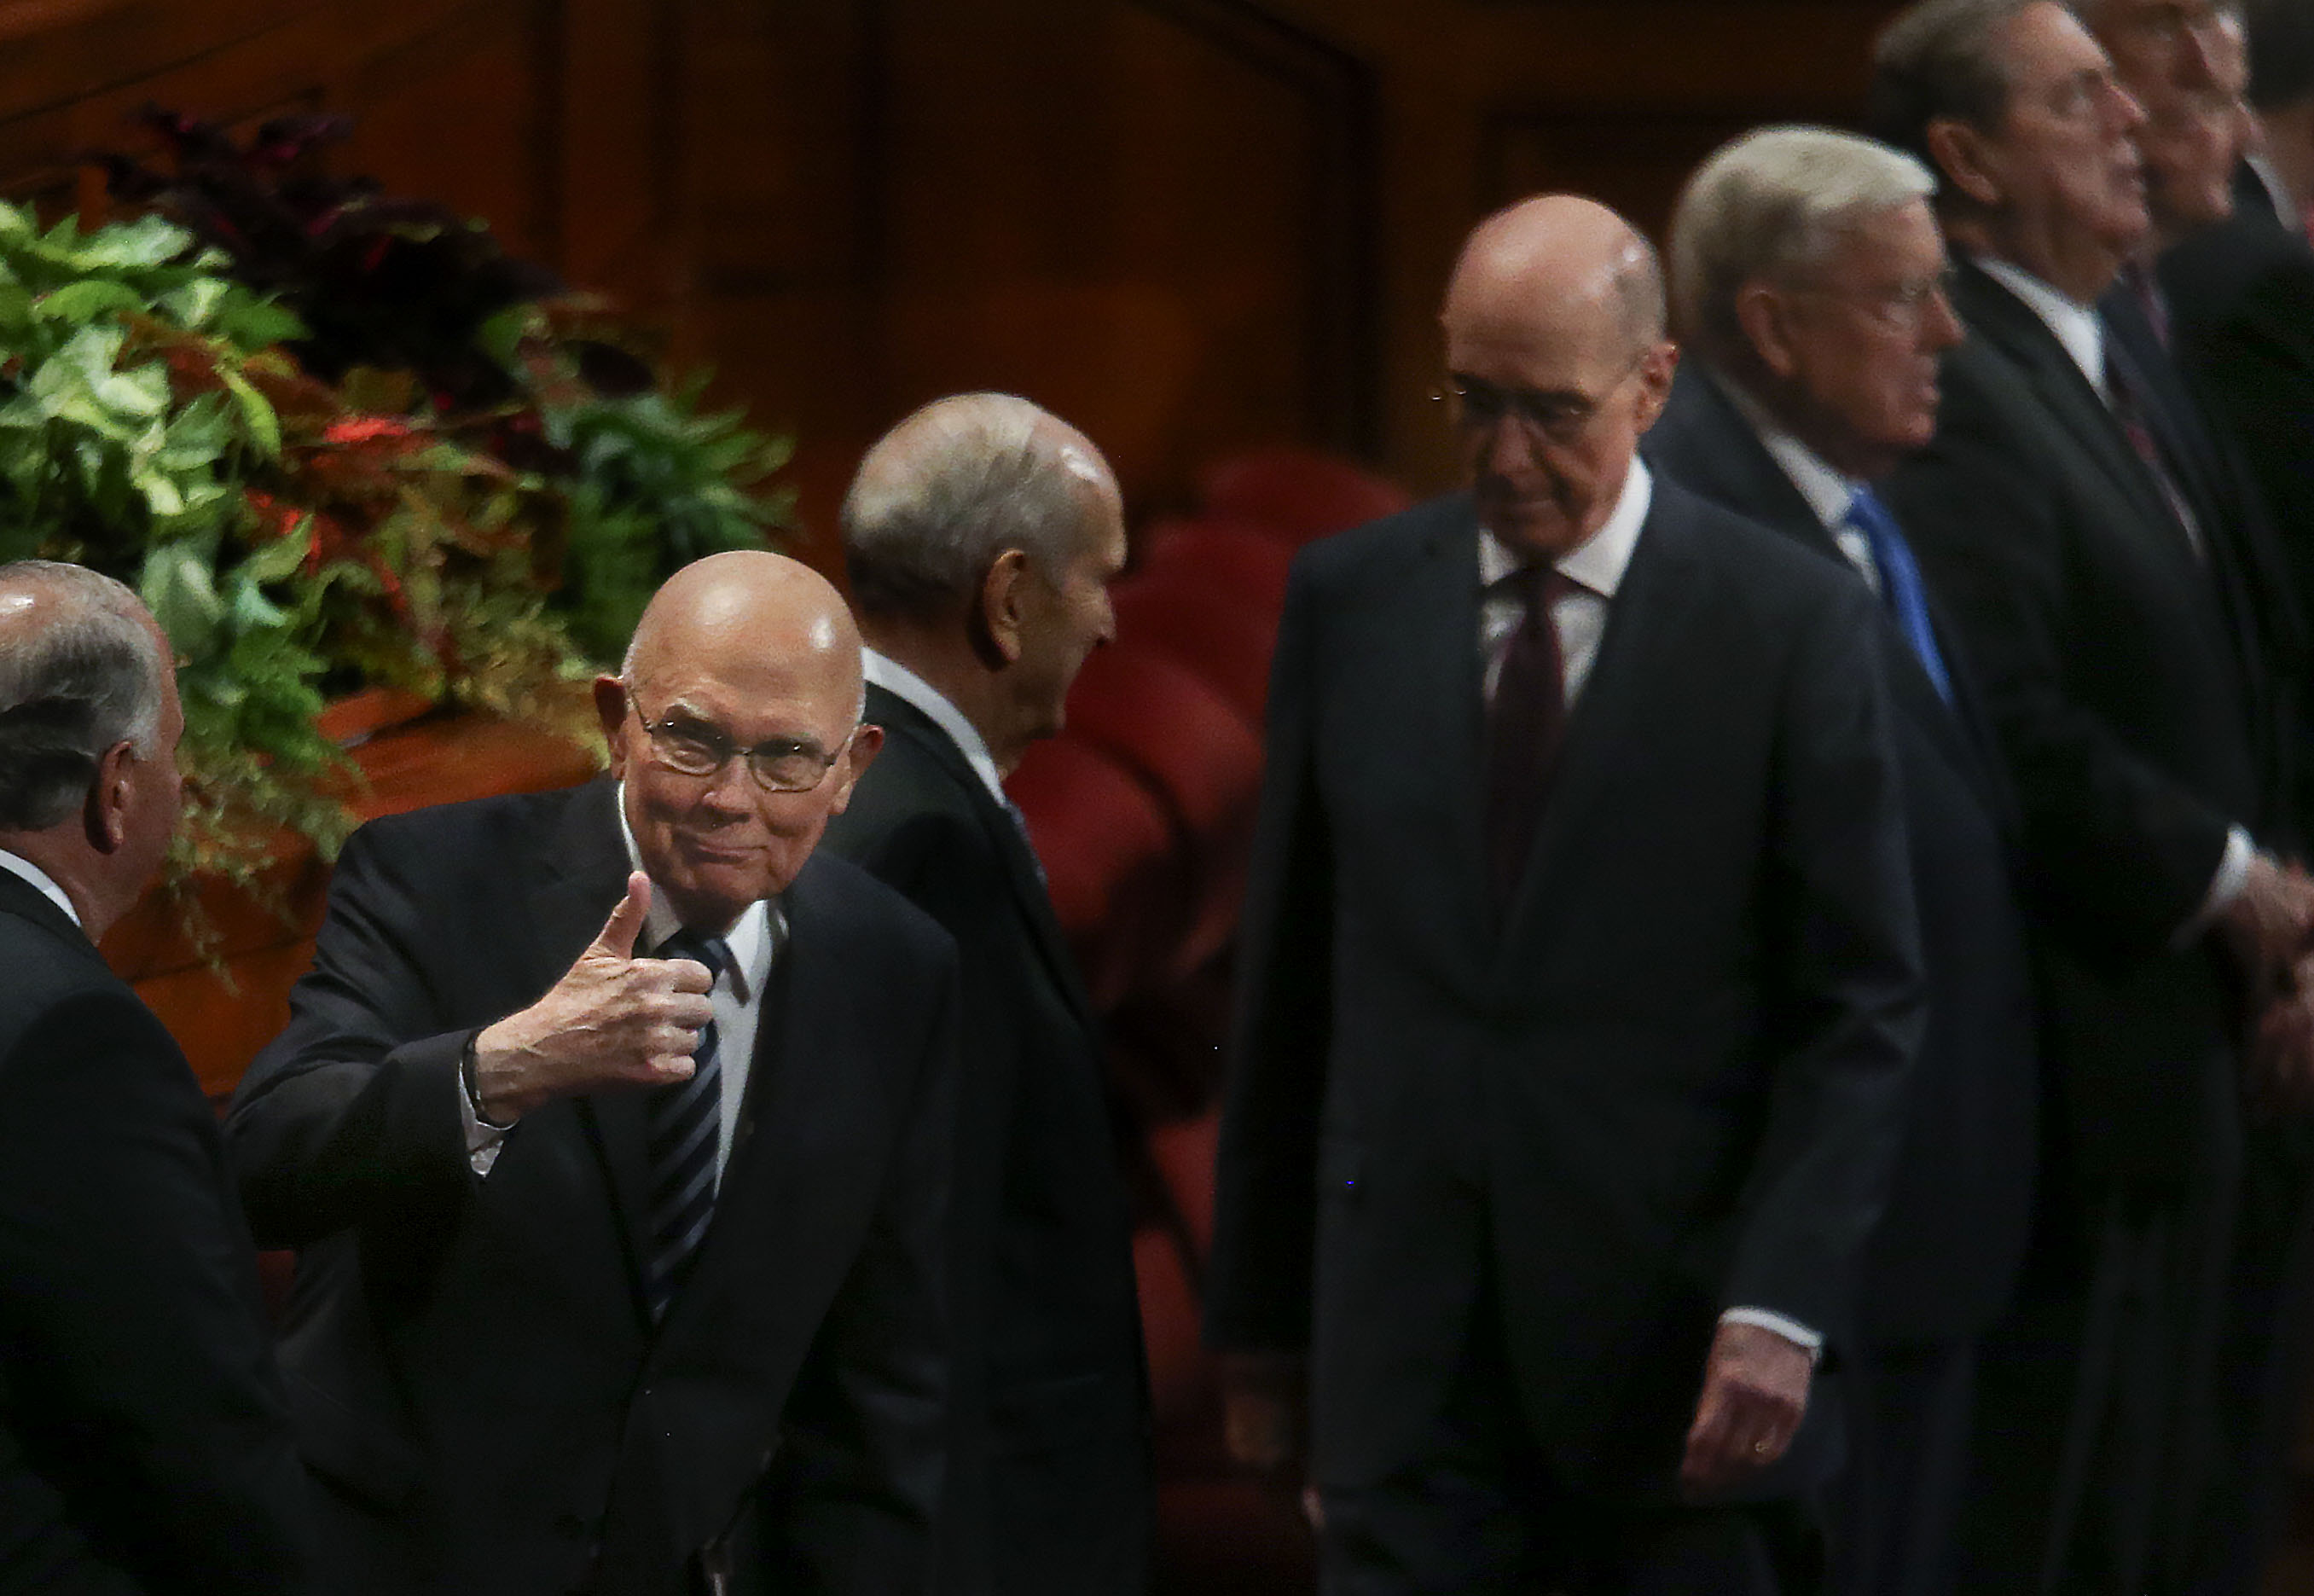 President Dallin H. Oaks, first counselor in the First Presidency of The Church of Jesus Christ of Latter-day Saints, gives a thumbs-up to church leaders as they enter the Conference Center for the Sunday afternoon session of the 189th Semiannual General Conference of The Church of Jesus Christ of Latter-day Saints in Salt Lake City on Sunday, Oct. 6, 2019.